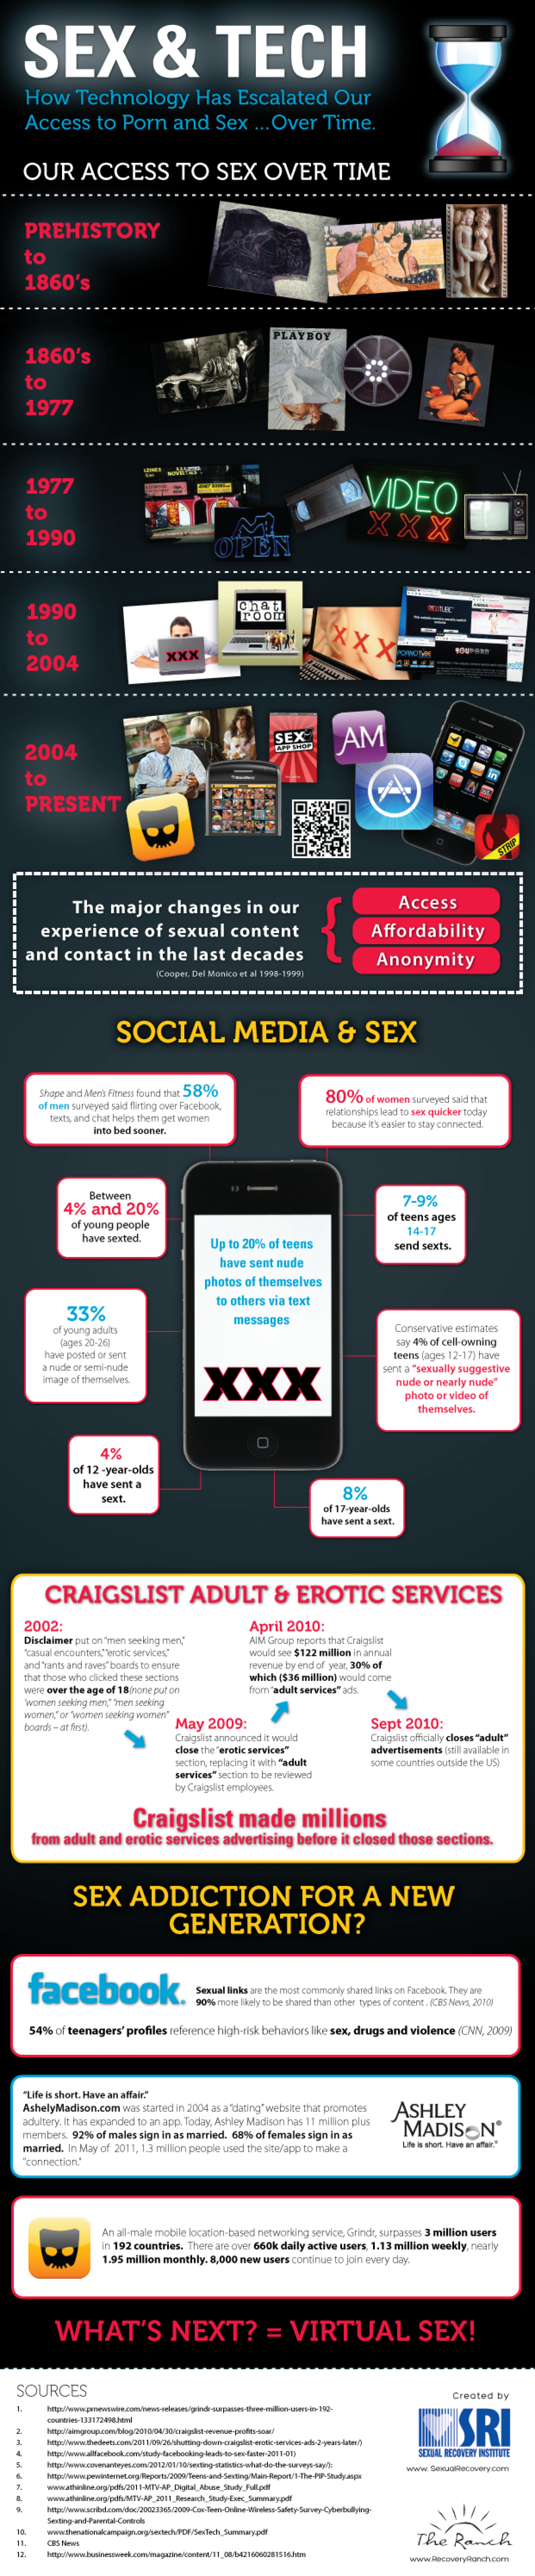 SEX & TECH Infographic